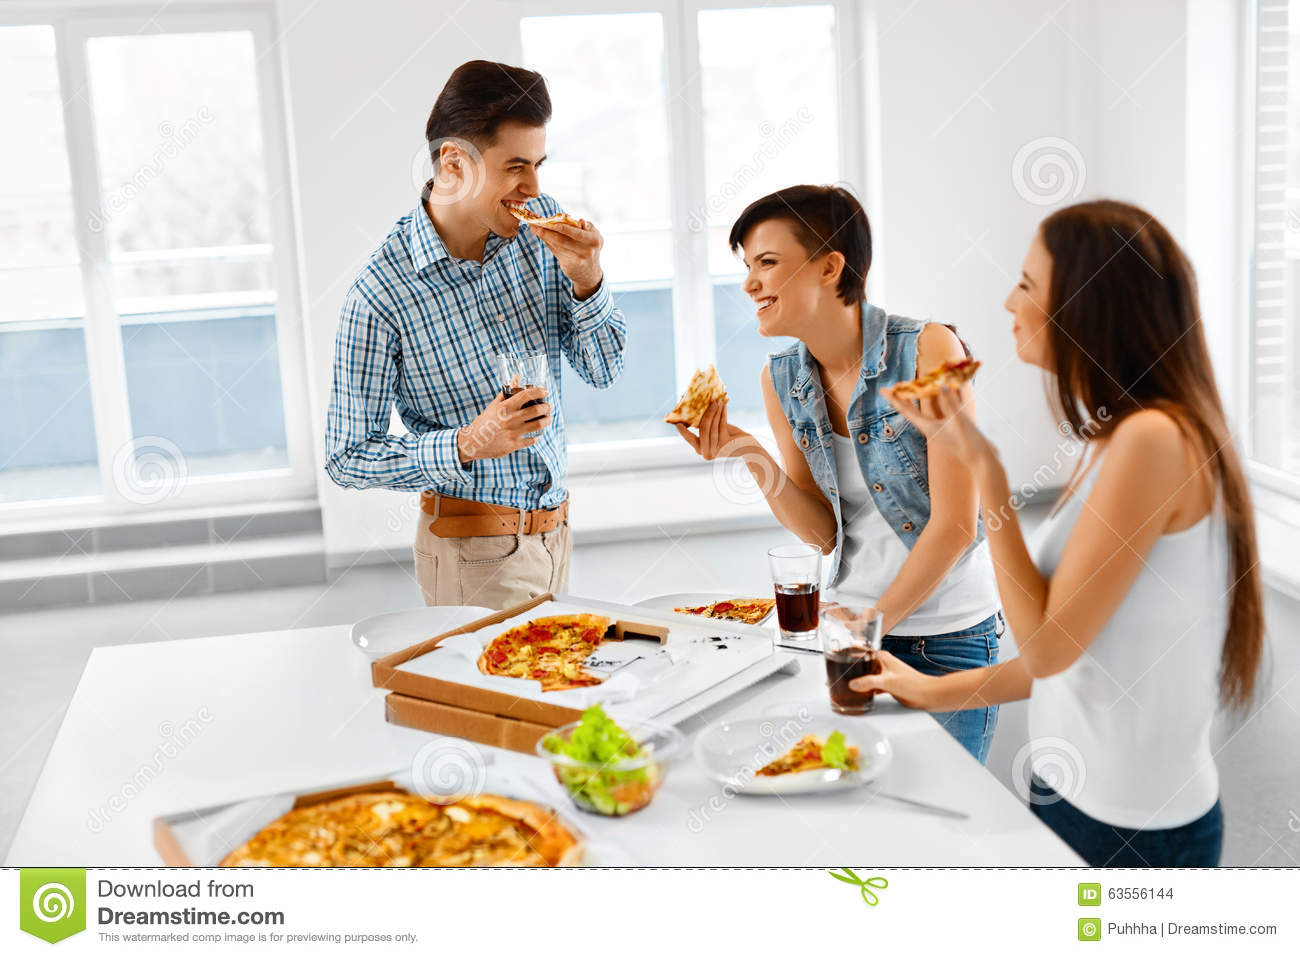 eating home and eating out Weight eating at home may help keep you from gaining weight eating out regularly may make you more likely to be overweight, obese or have a higher waist circumference, according to a review article published in 2012 in critical reviews in food science and nutrition.